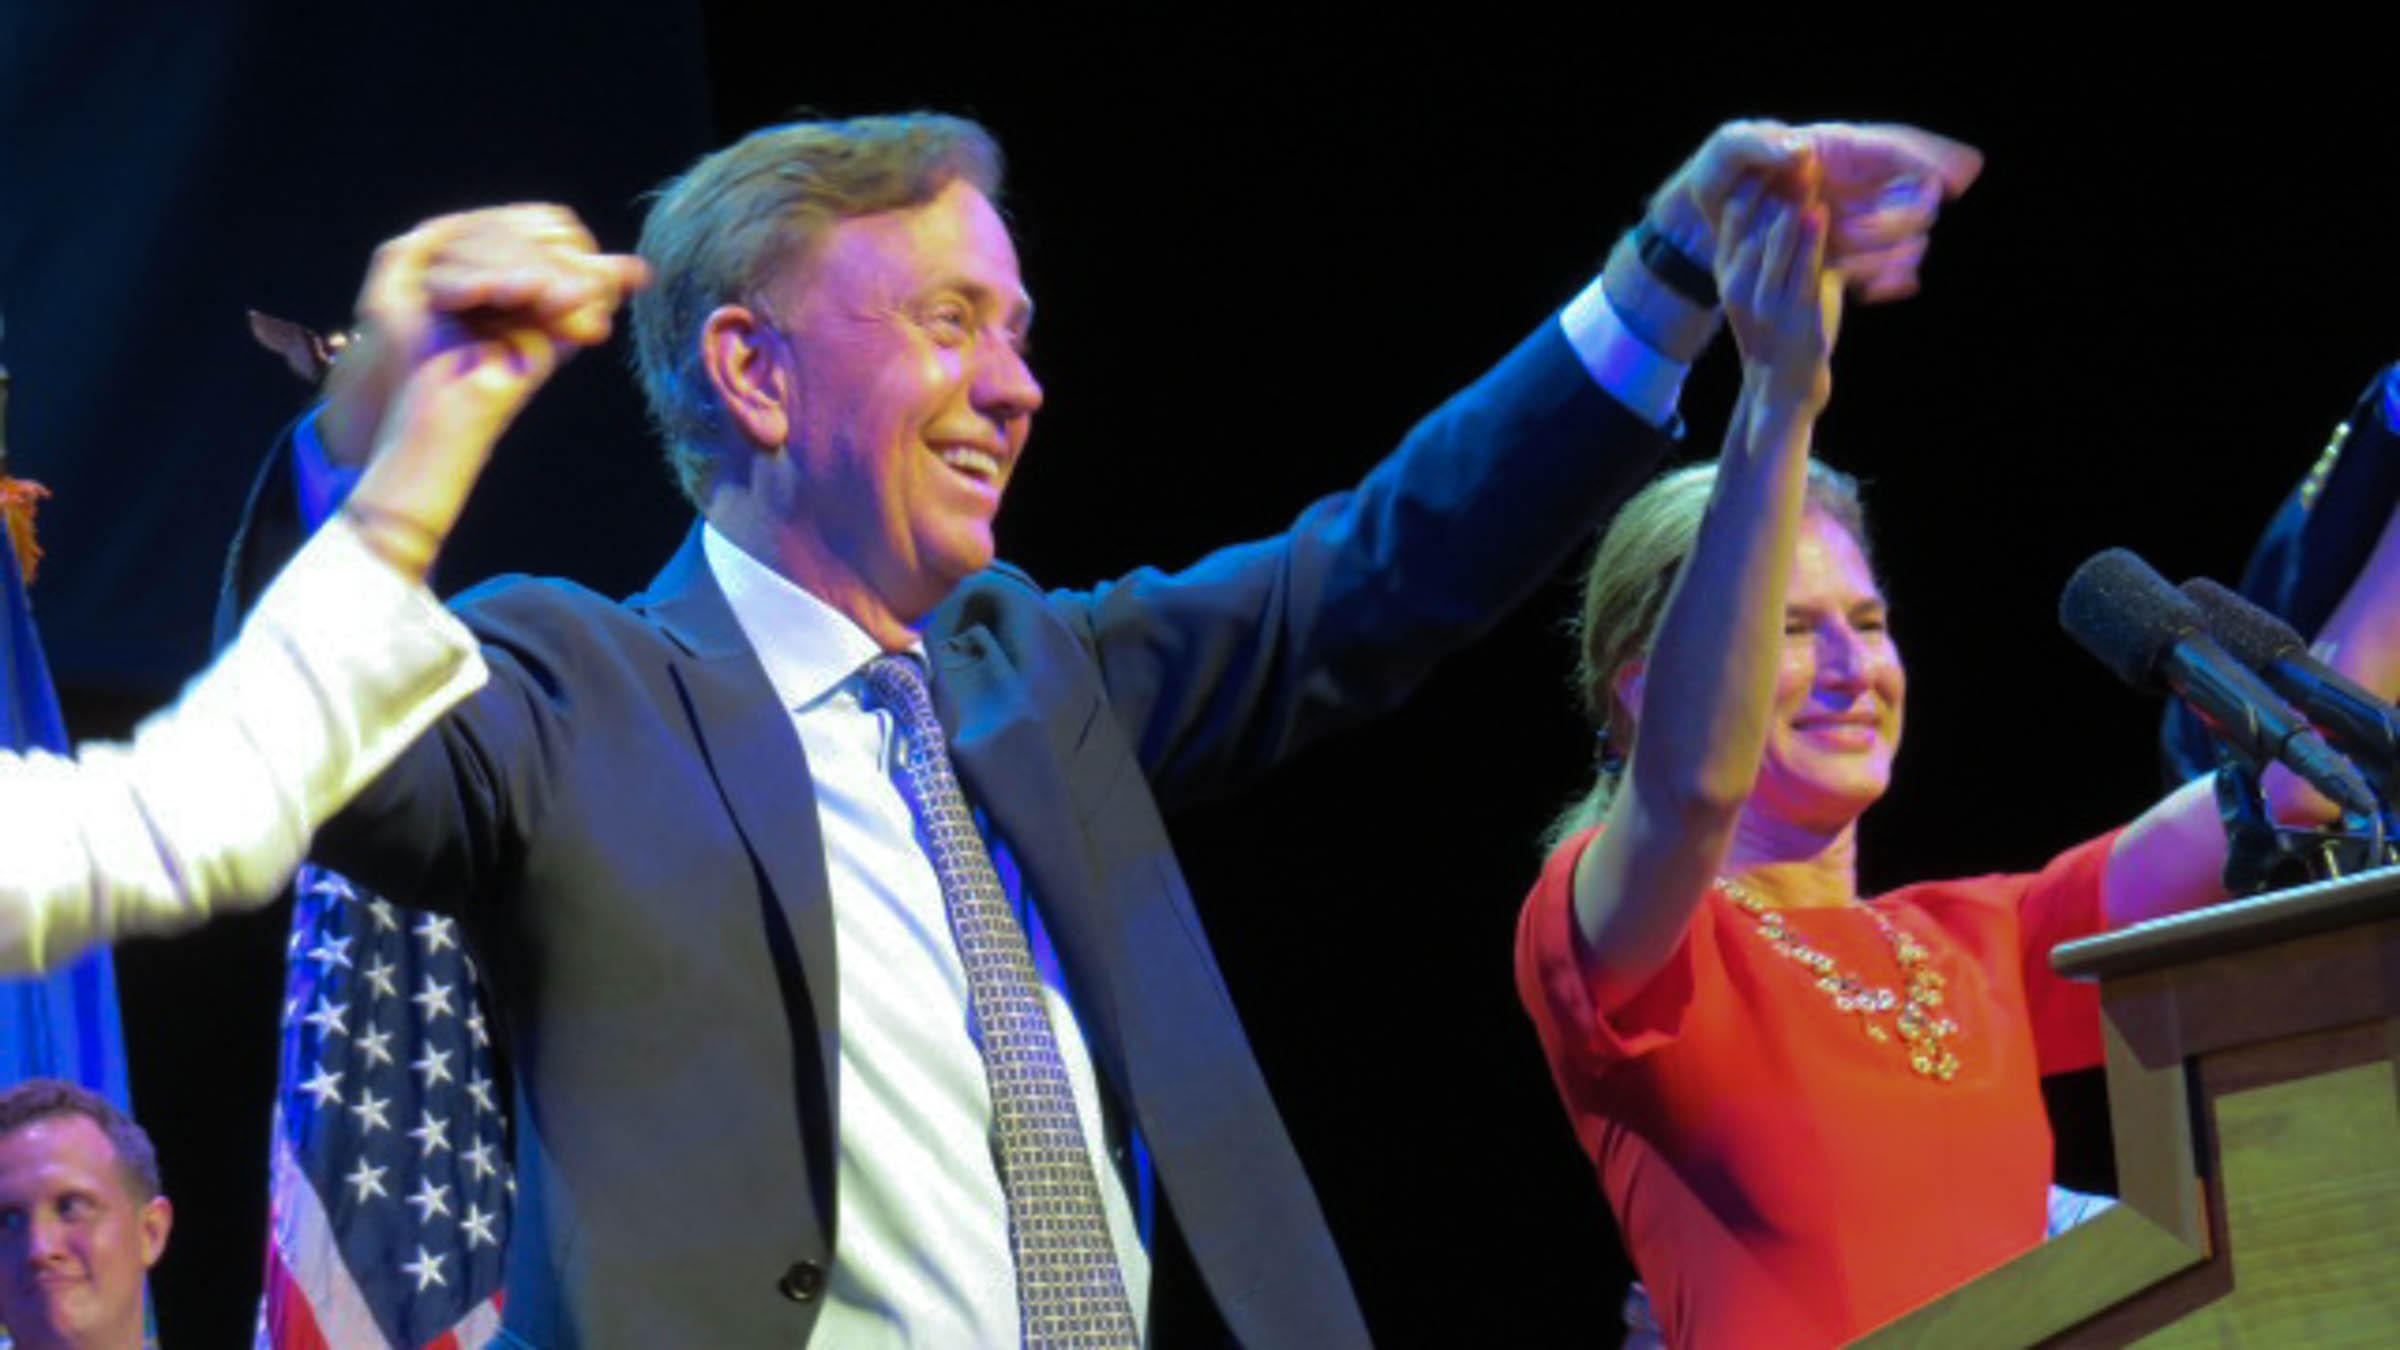 Lamont defeats Ganim in landslide